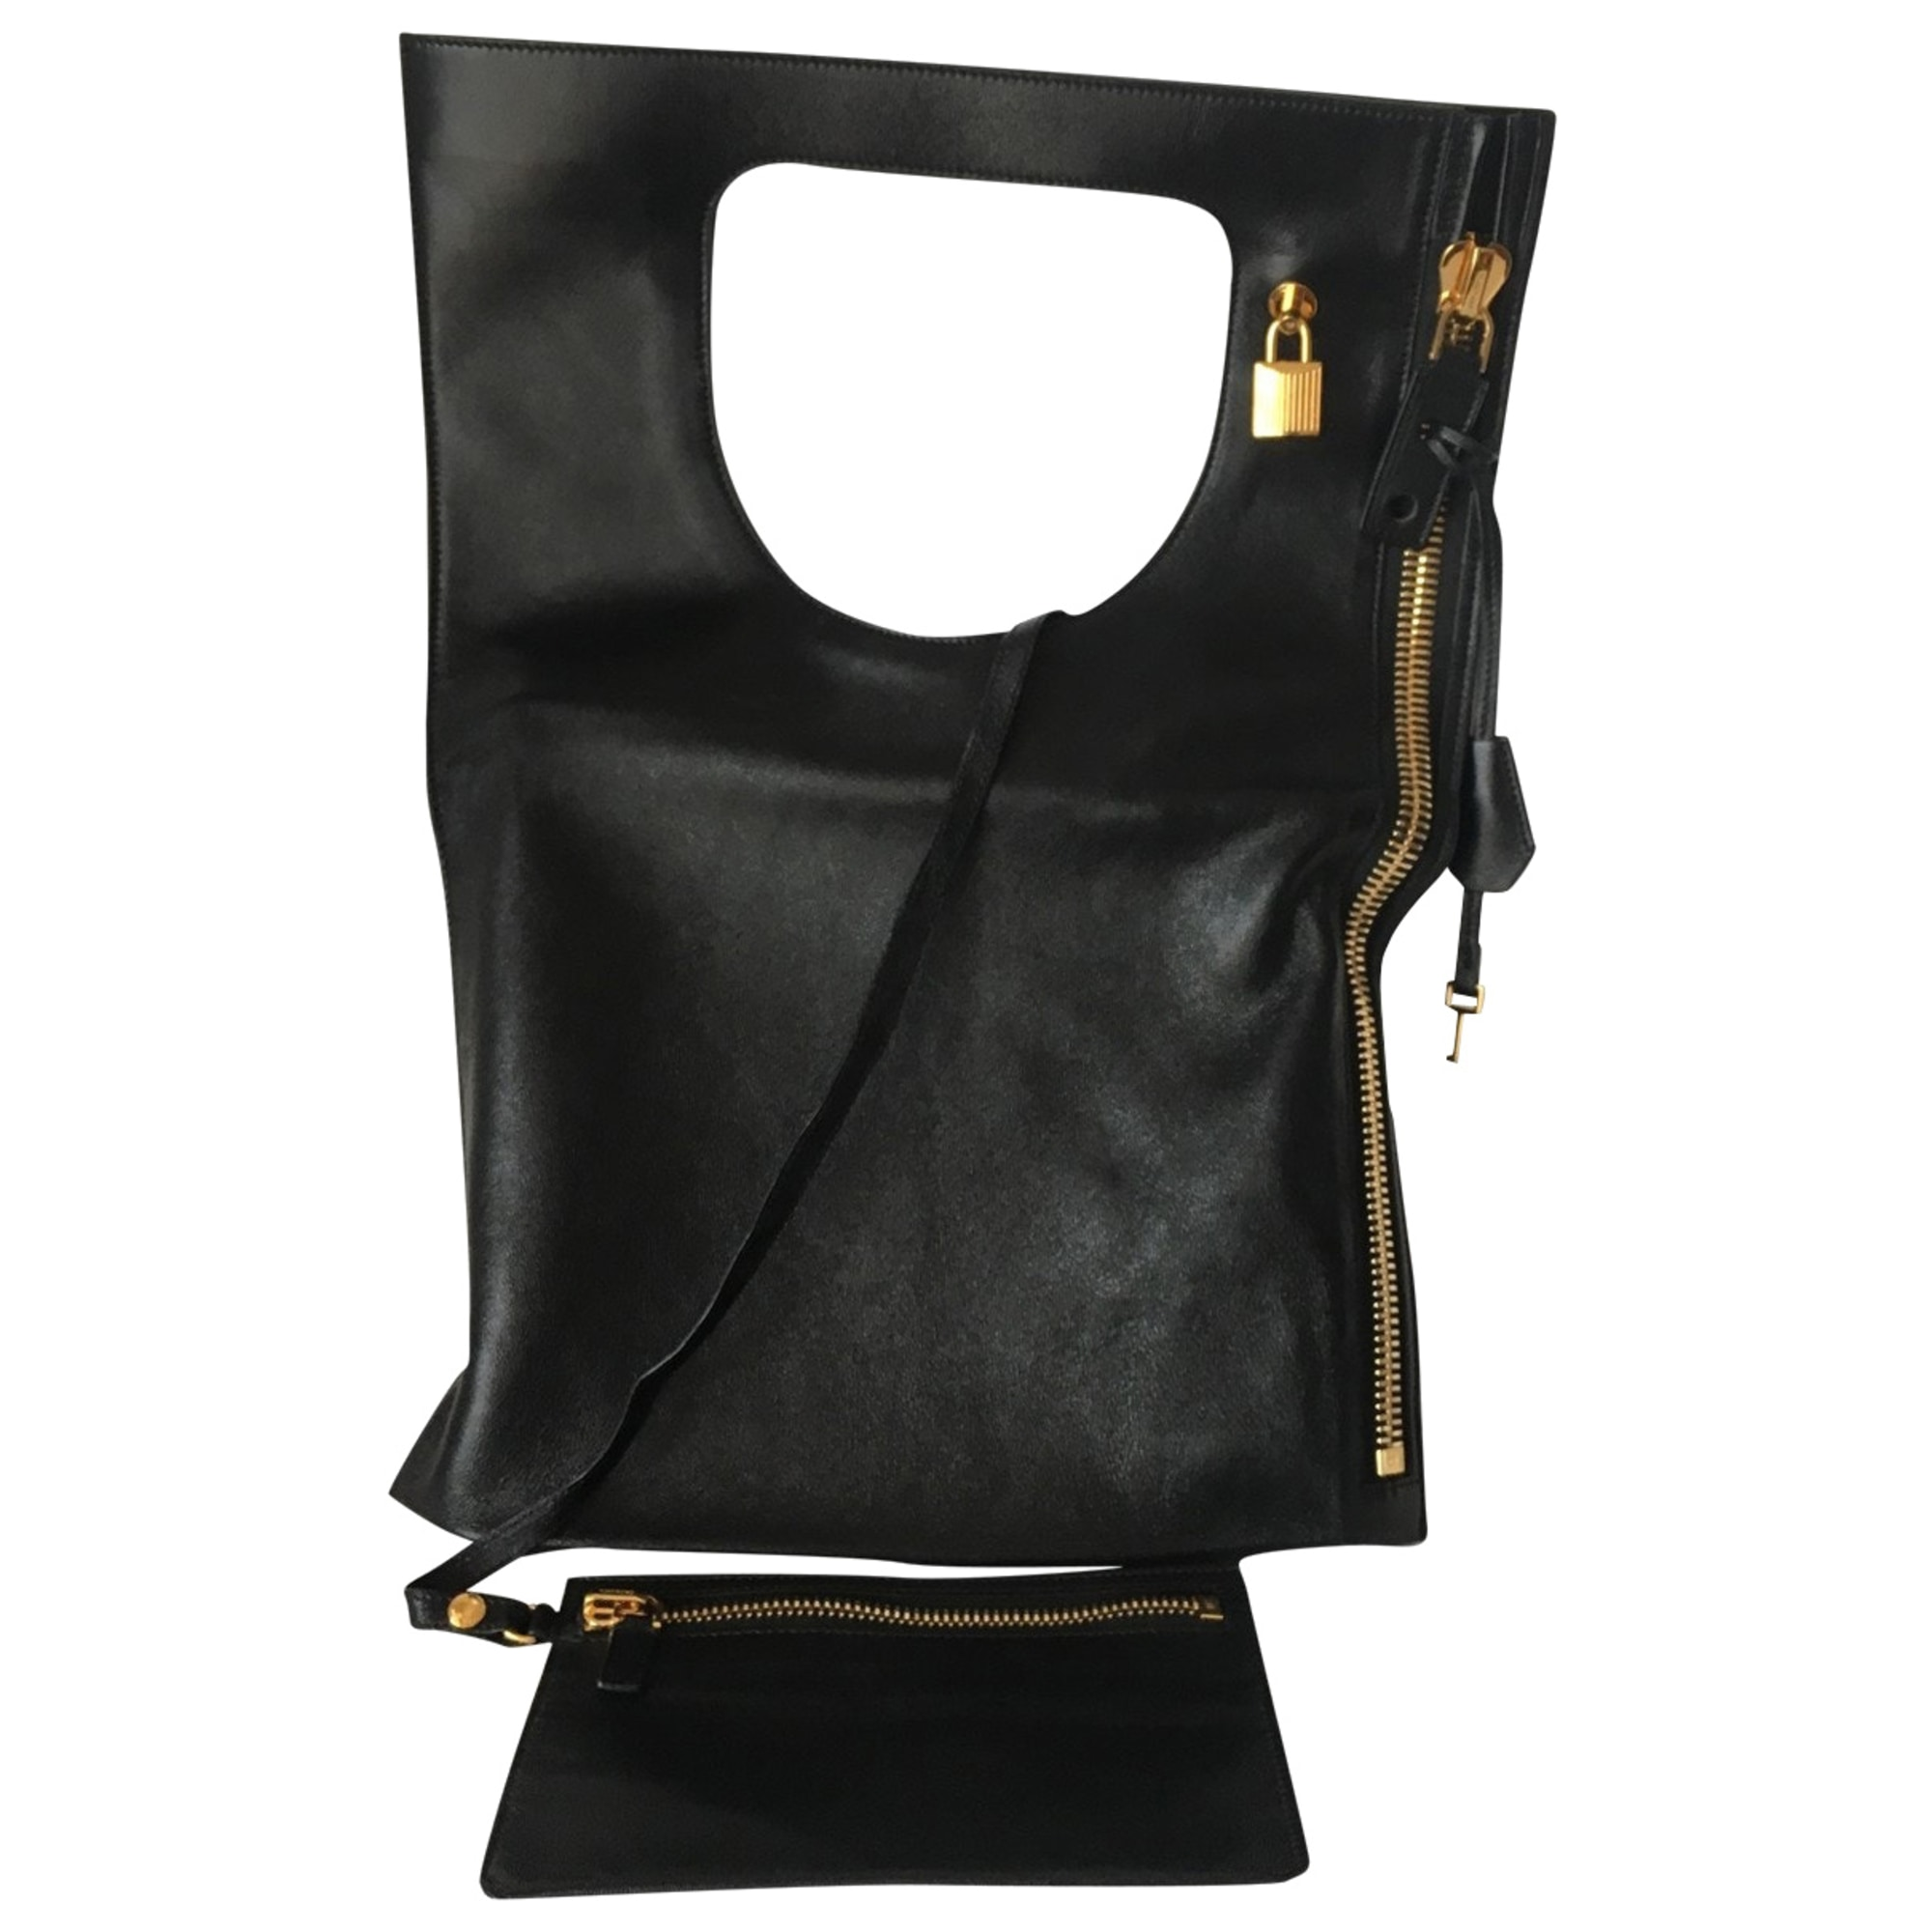 Sac à main en cuir TOM FORD Noir